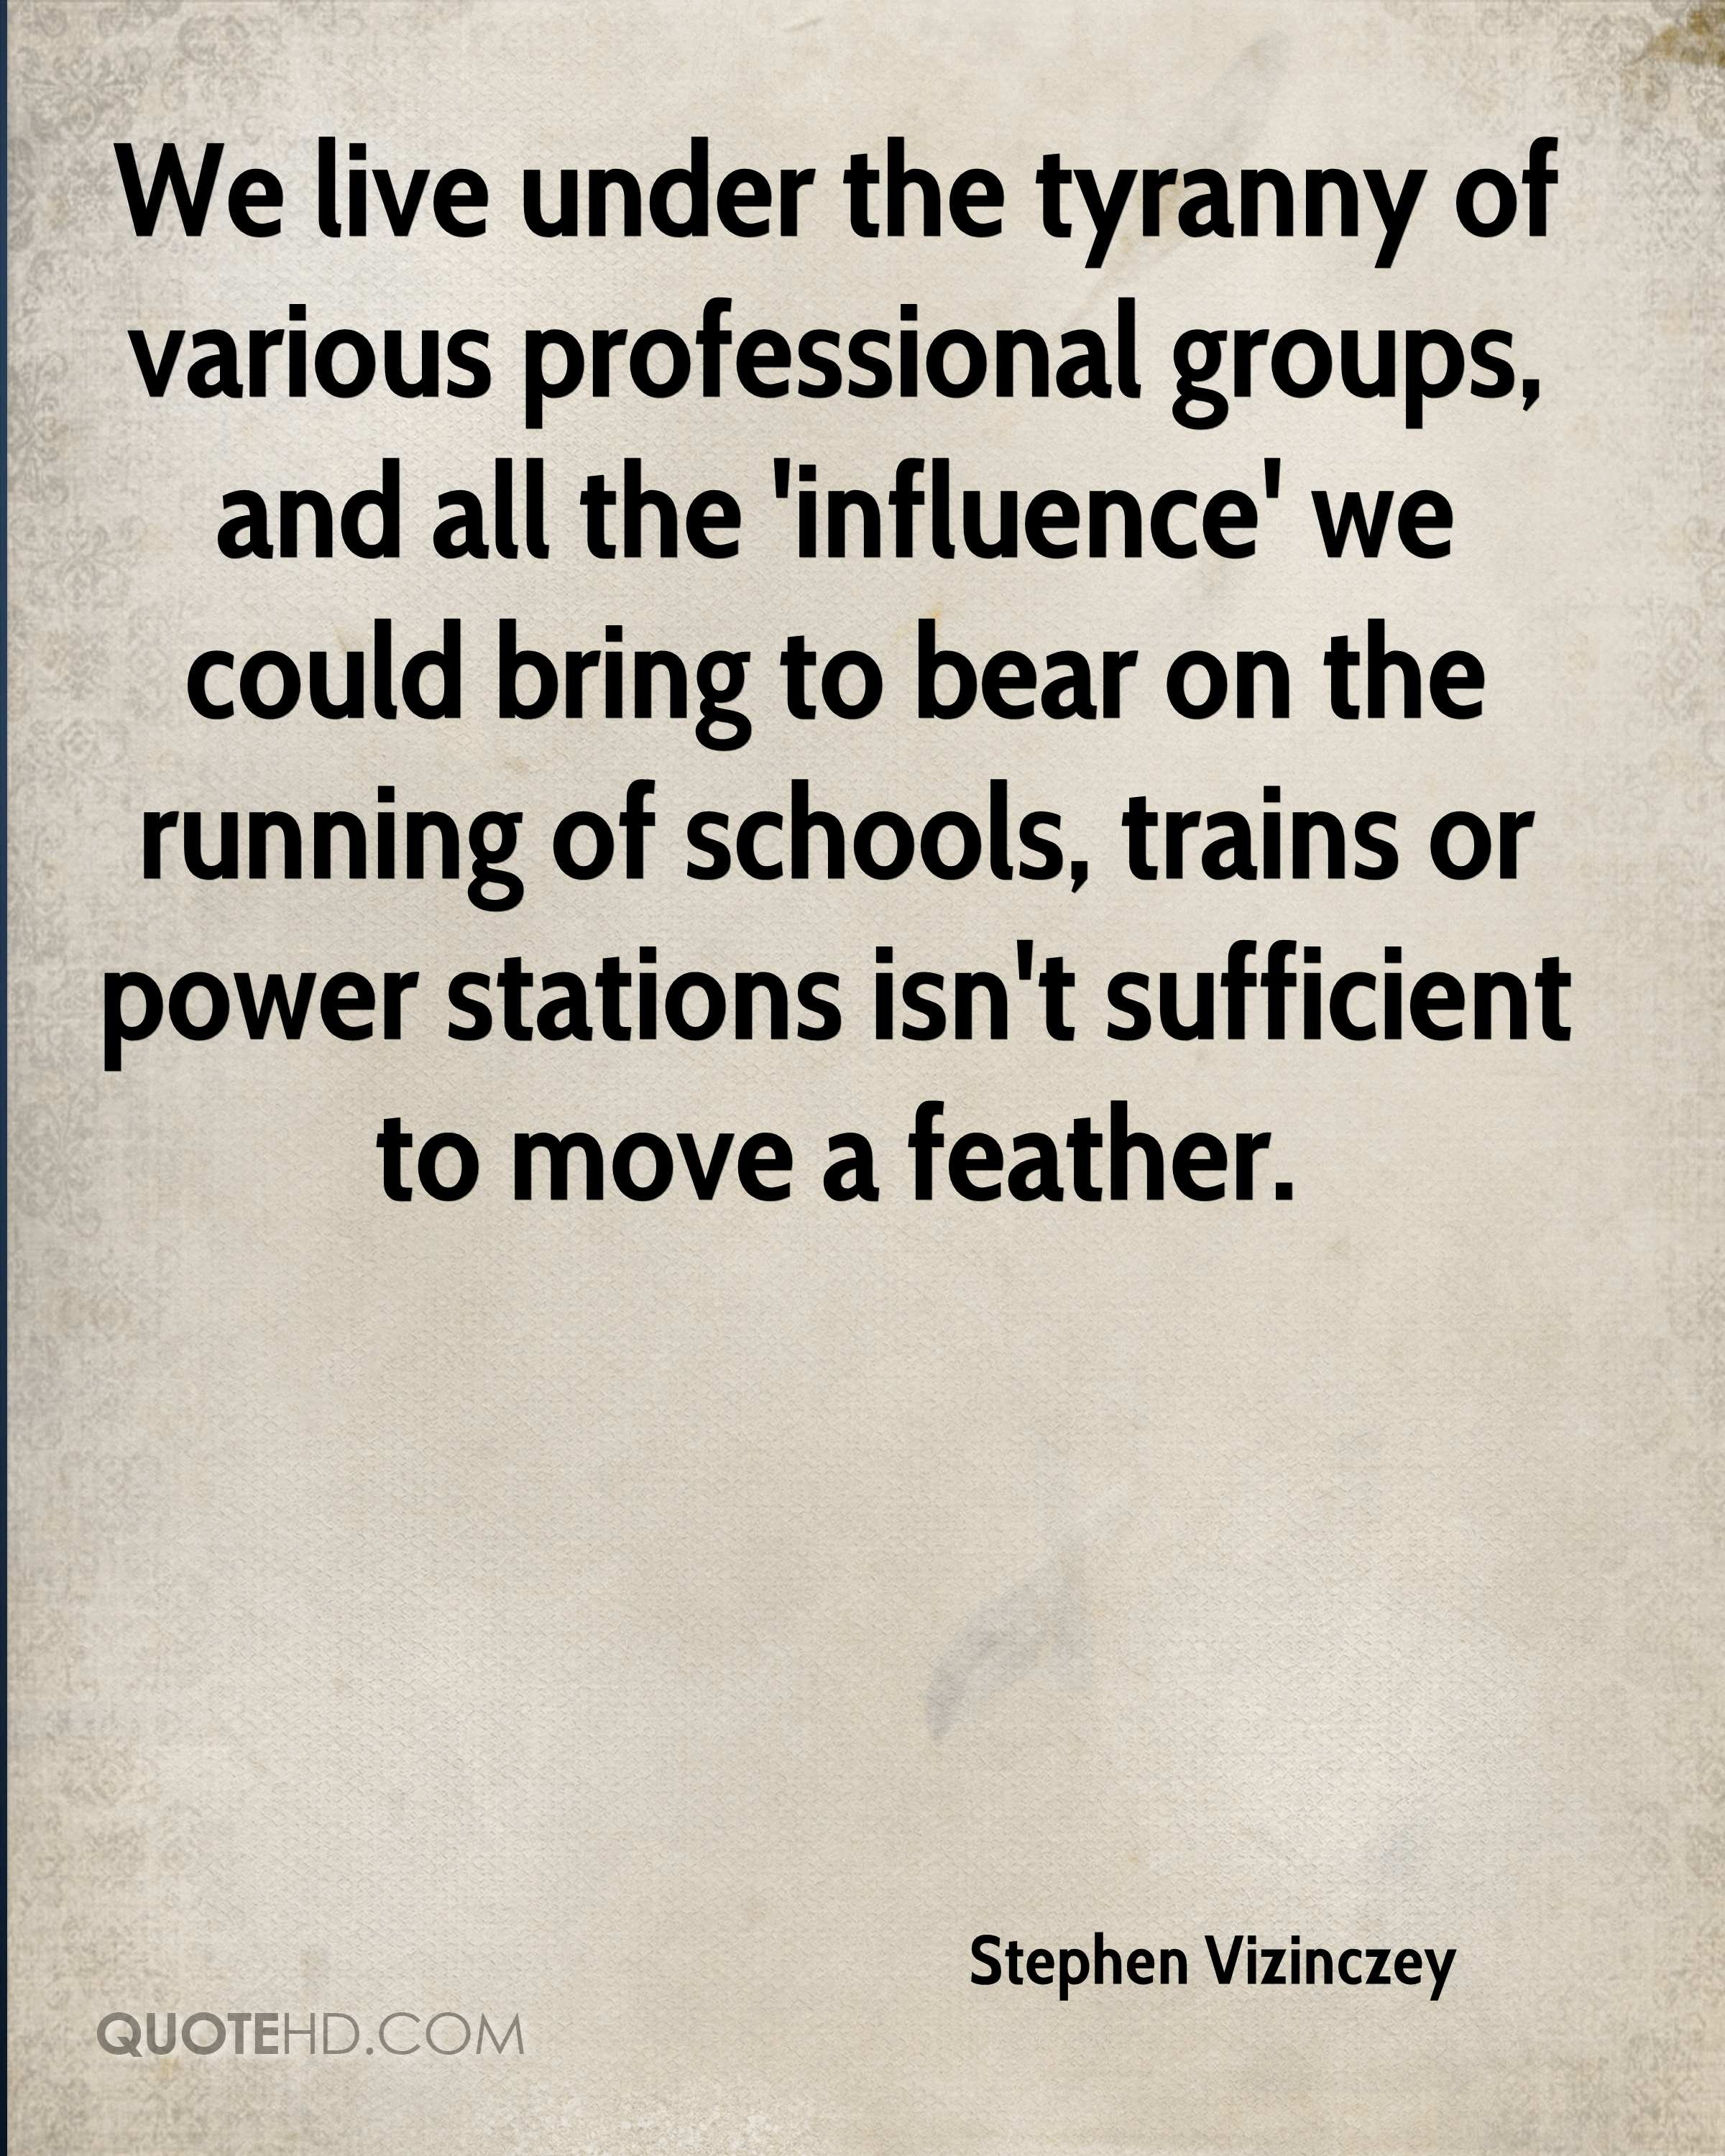 We live under the tyranny of various professional groups, and all the 'influence' we could bring to bear on the running of schools, trains or power stations isn't sufficient to move a feather.